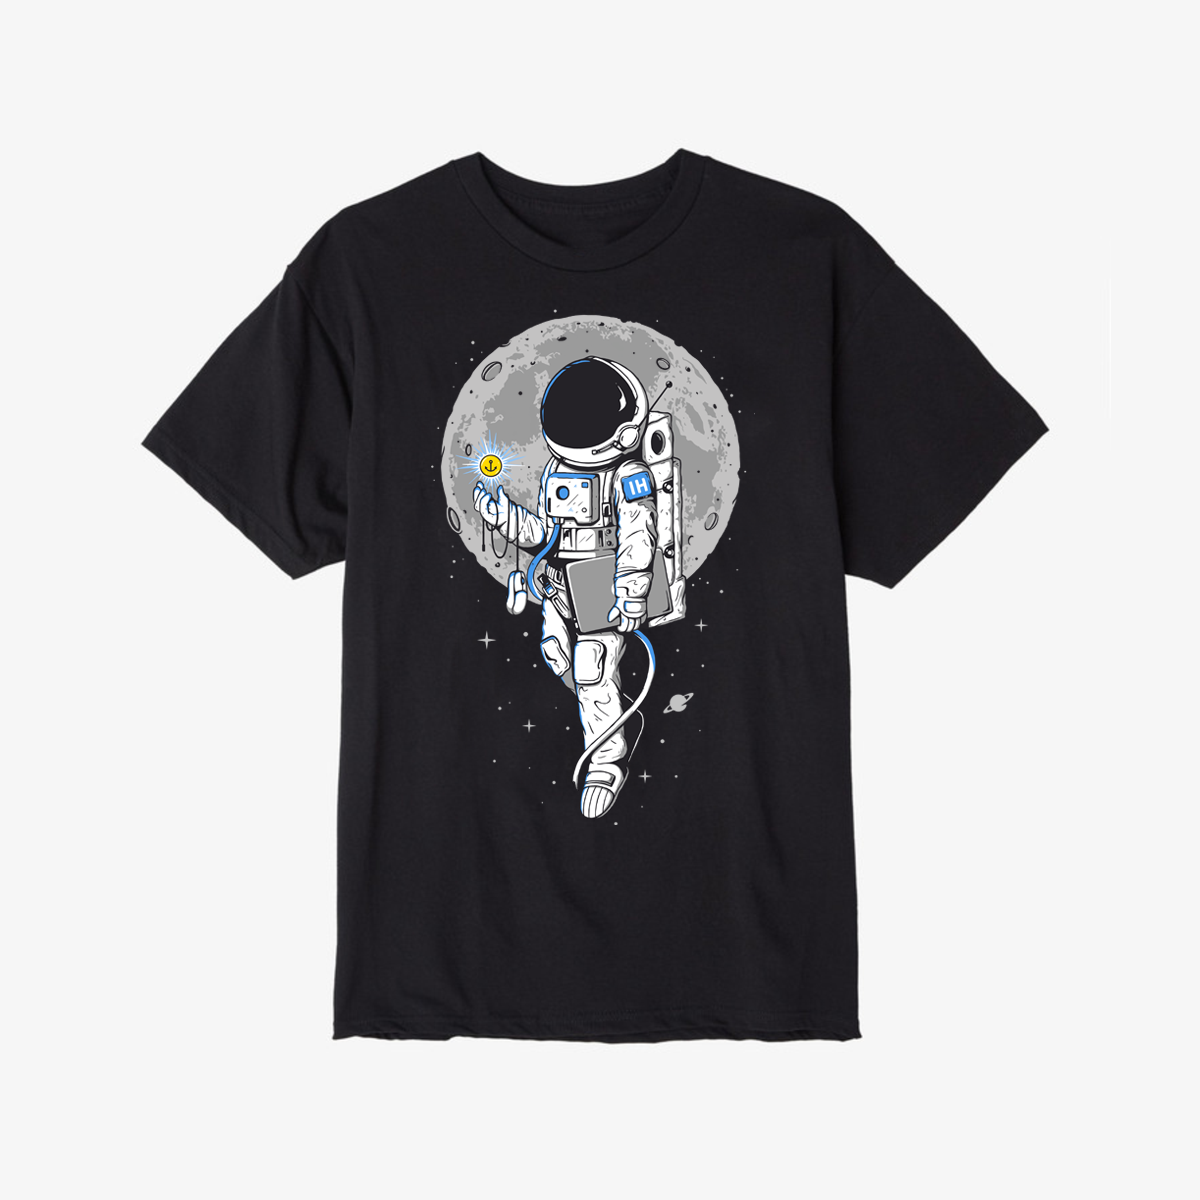 INDIE HACKER T-SHIRT DESIGN